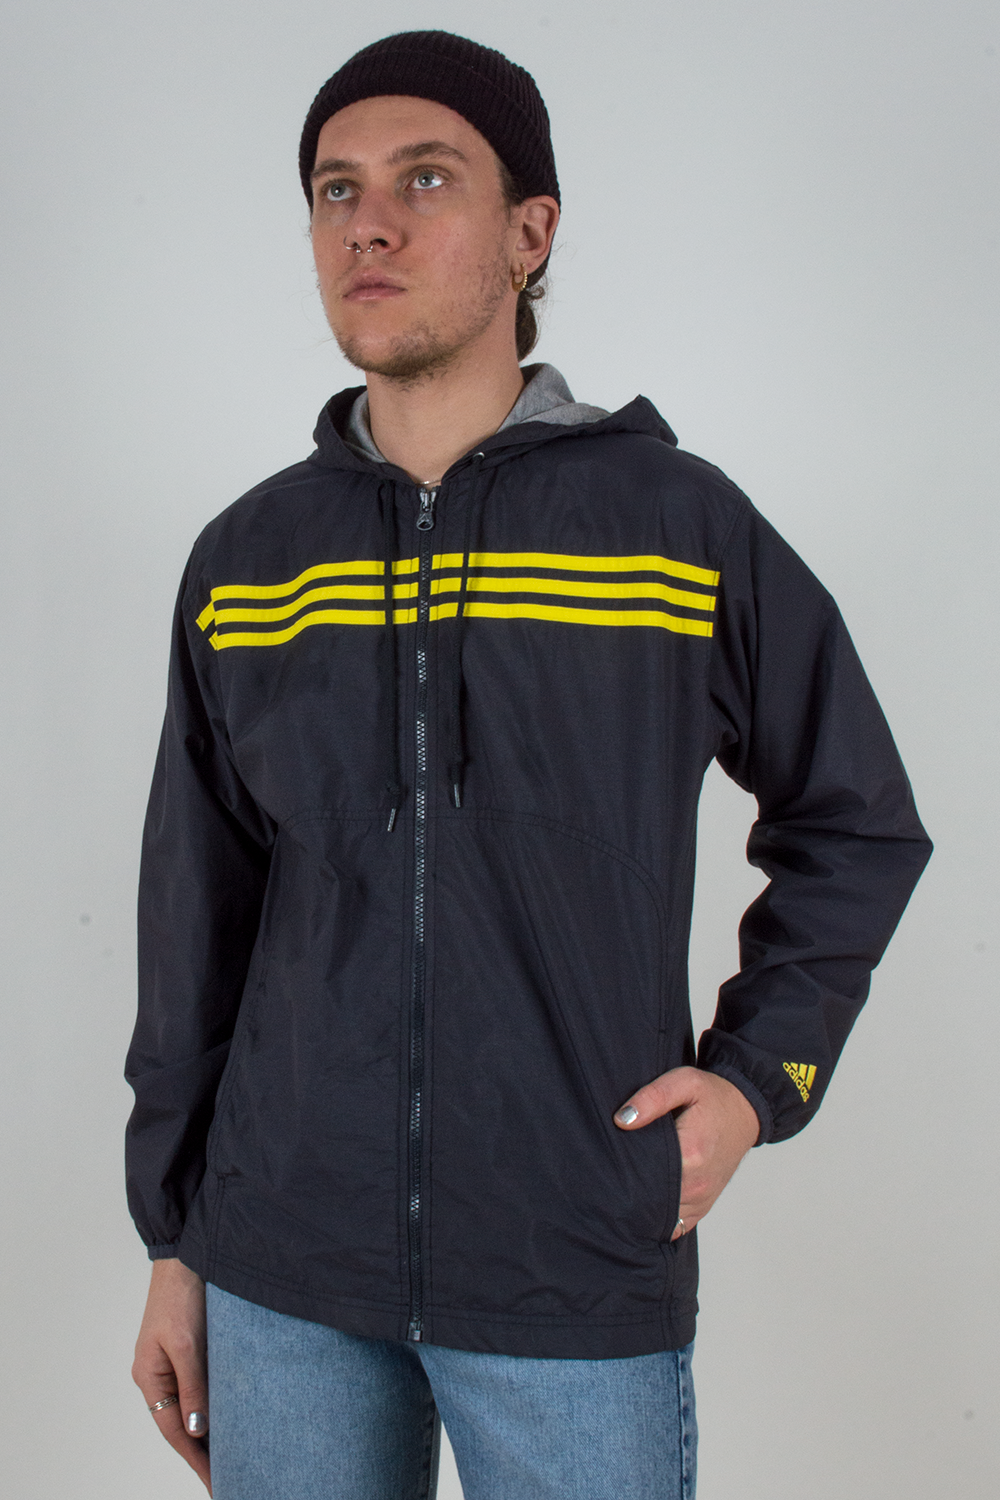 vintage navy blue Adidas track jacket with yellow stripes